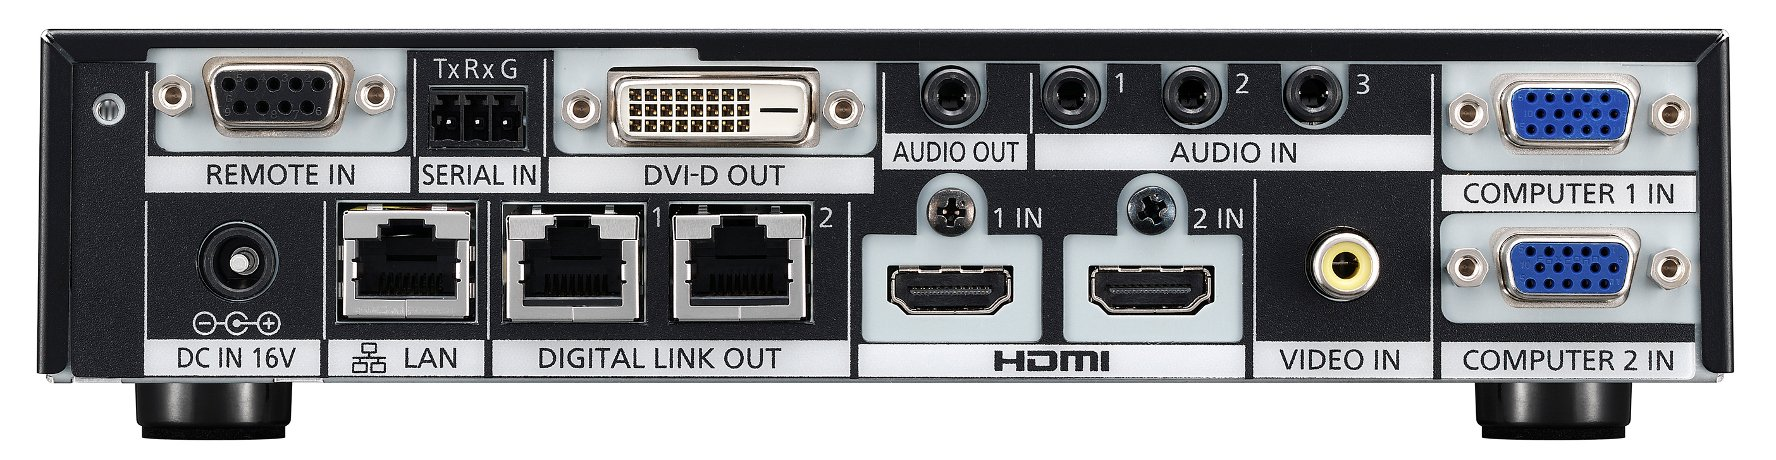 DIGITAL LINK Switcher